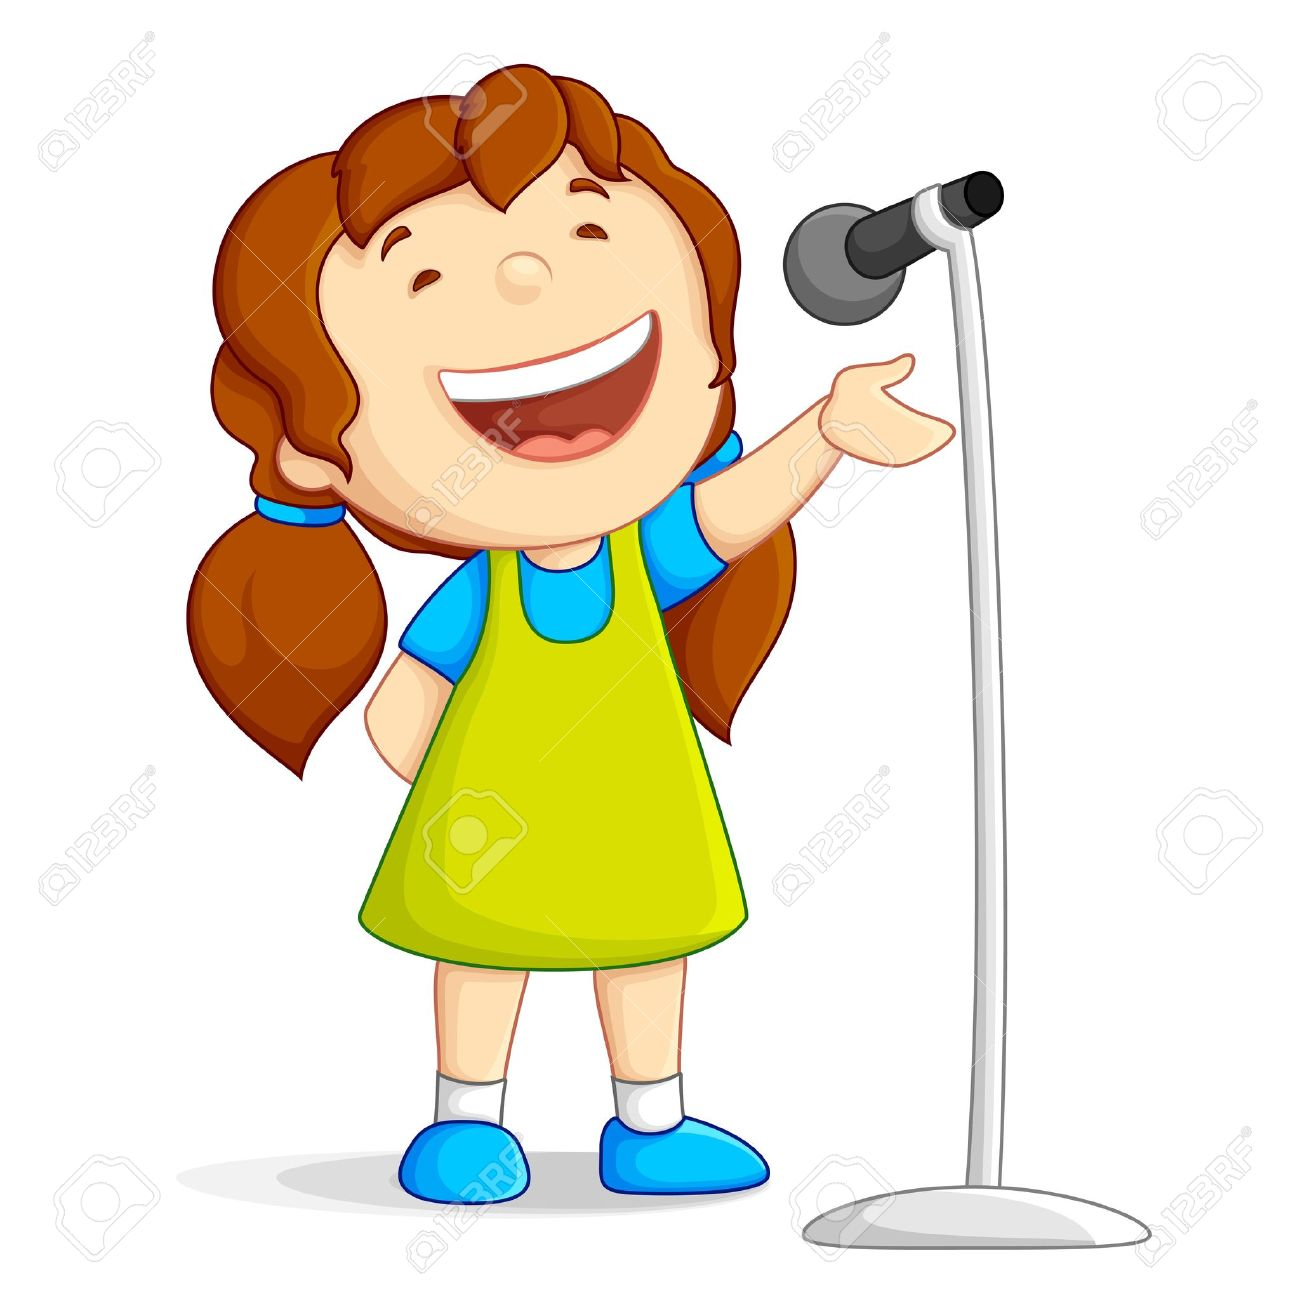 Singer clipart female singer Microphone  Clipart Collection jazz